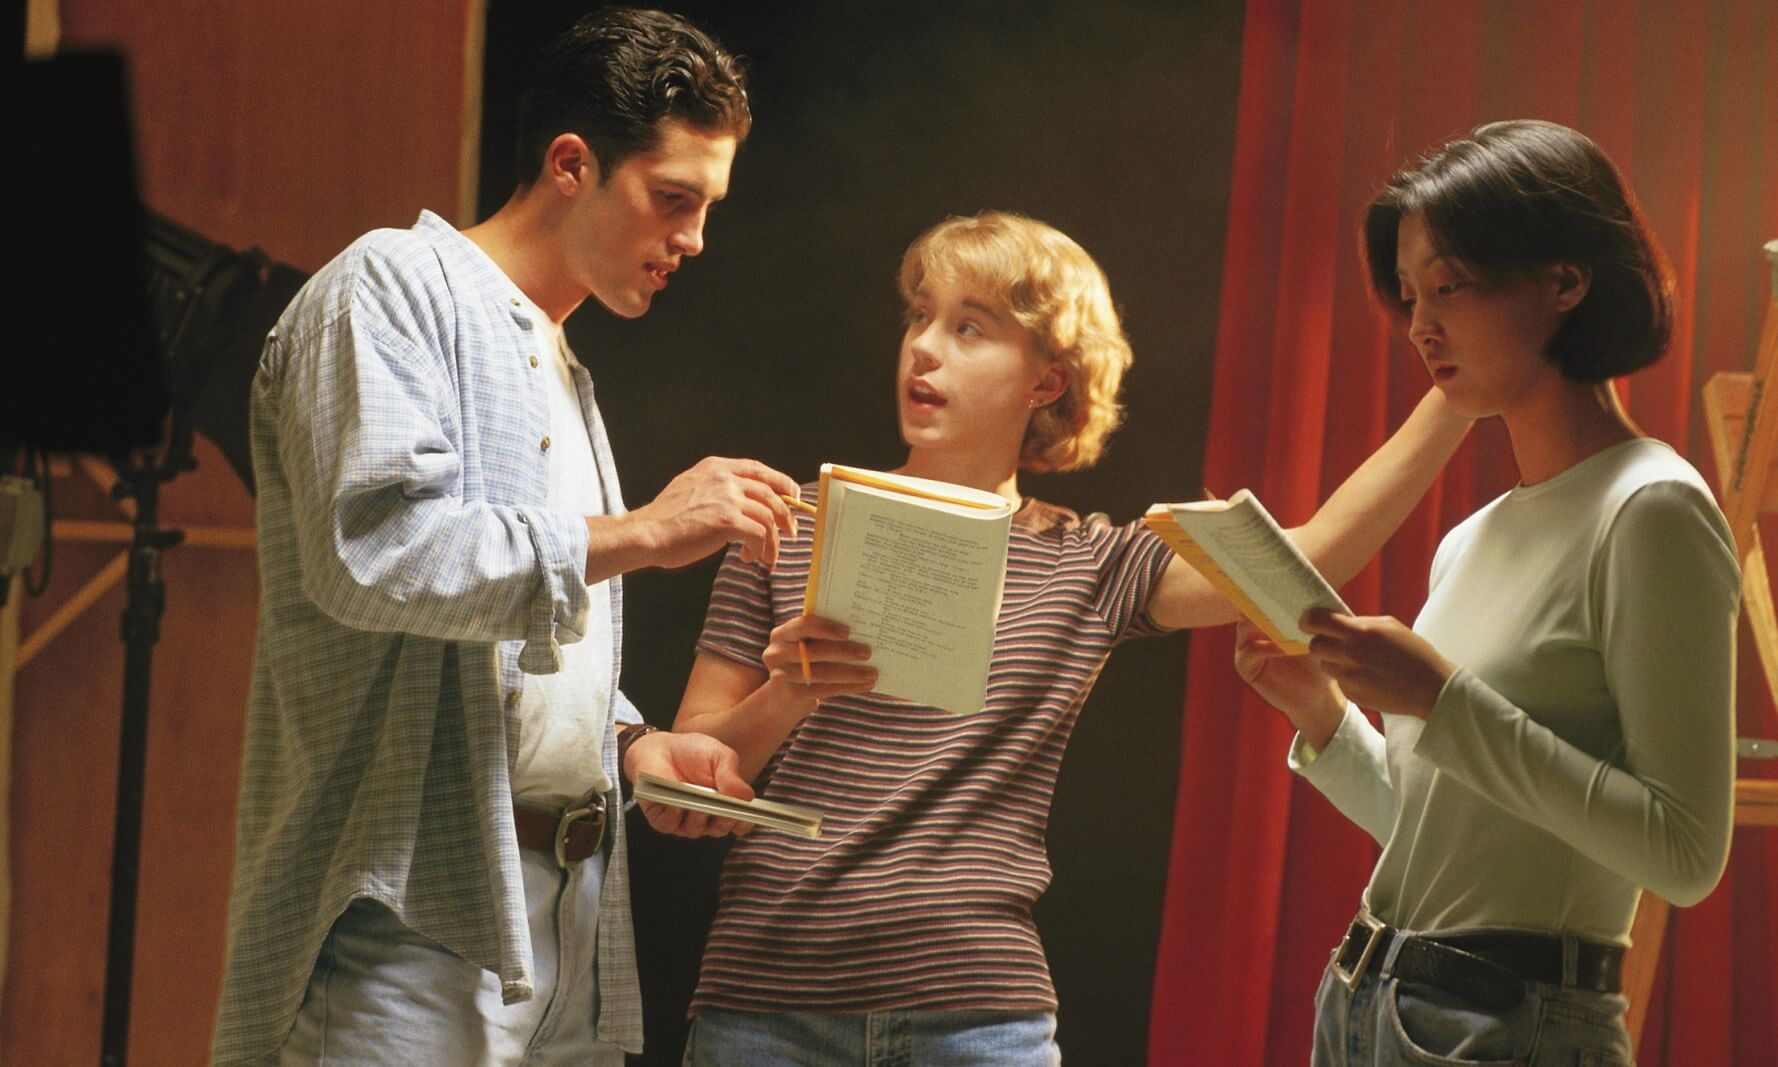 Three actors practicing their lines in a theater